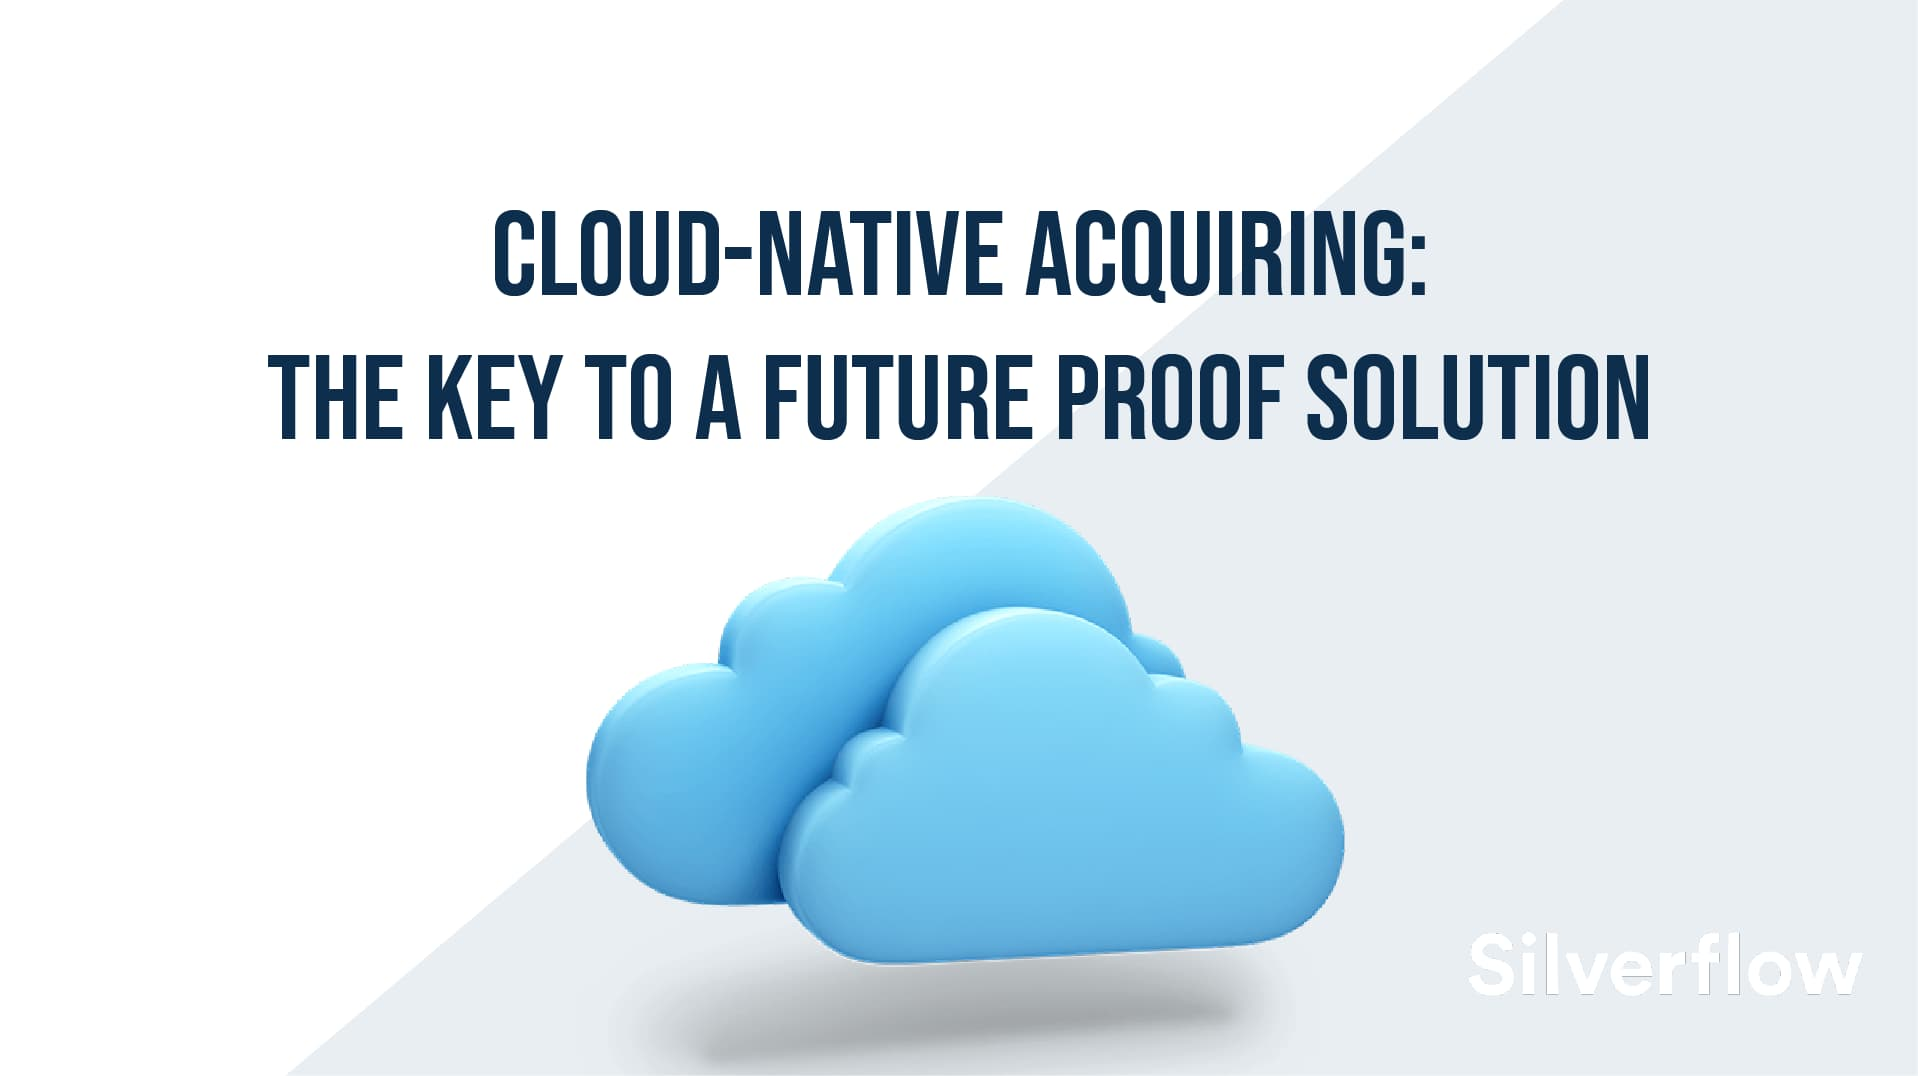 Cloud-Native Acquiring: The Key to a Future Proof Solution